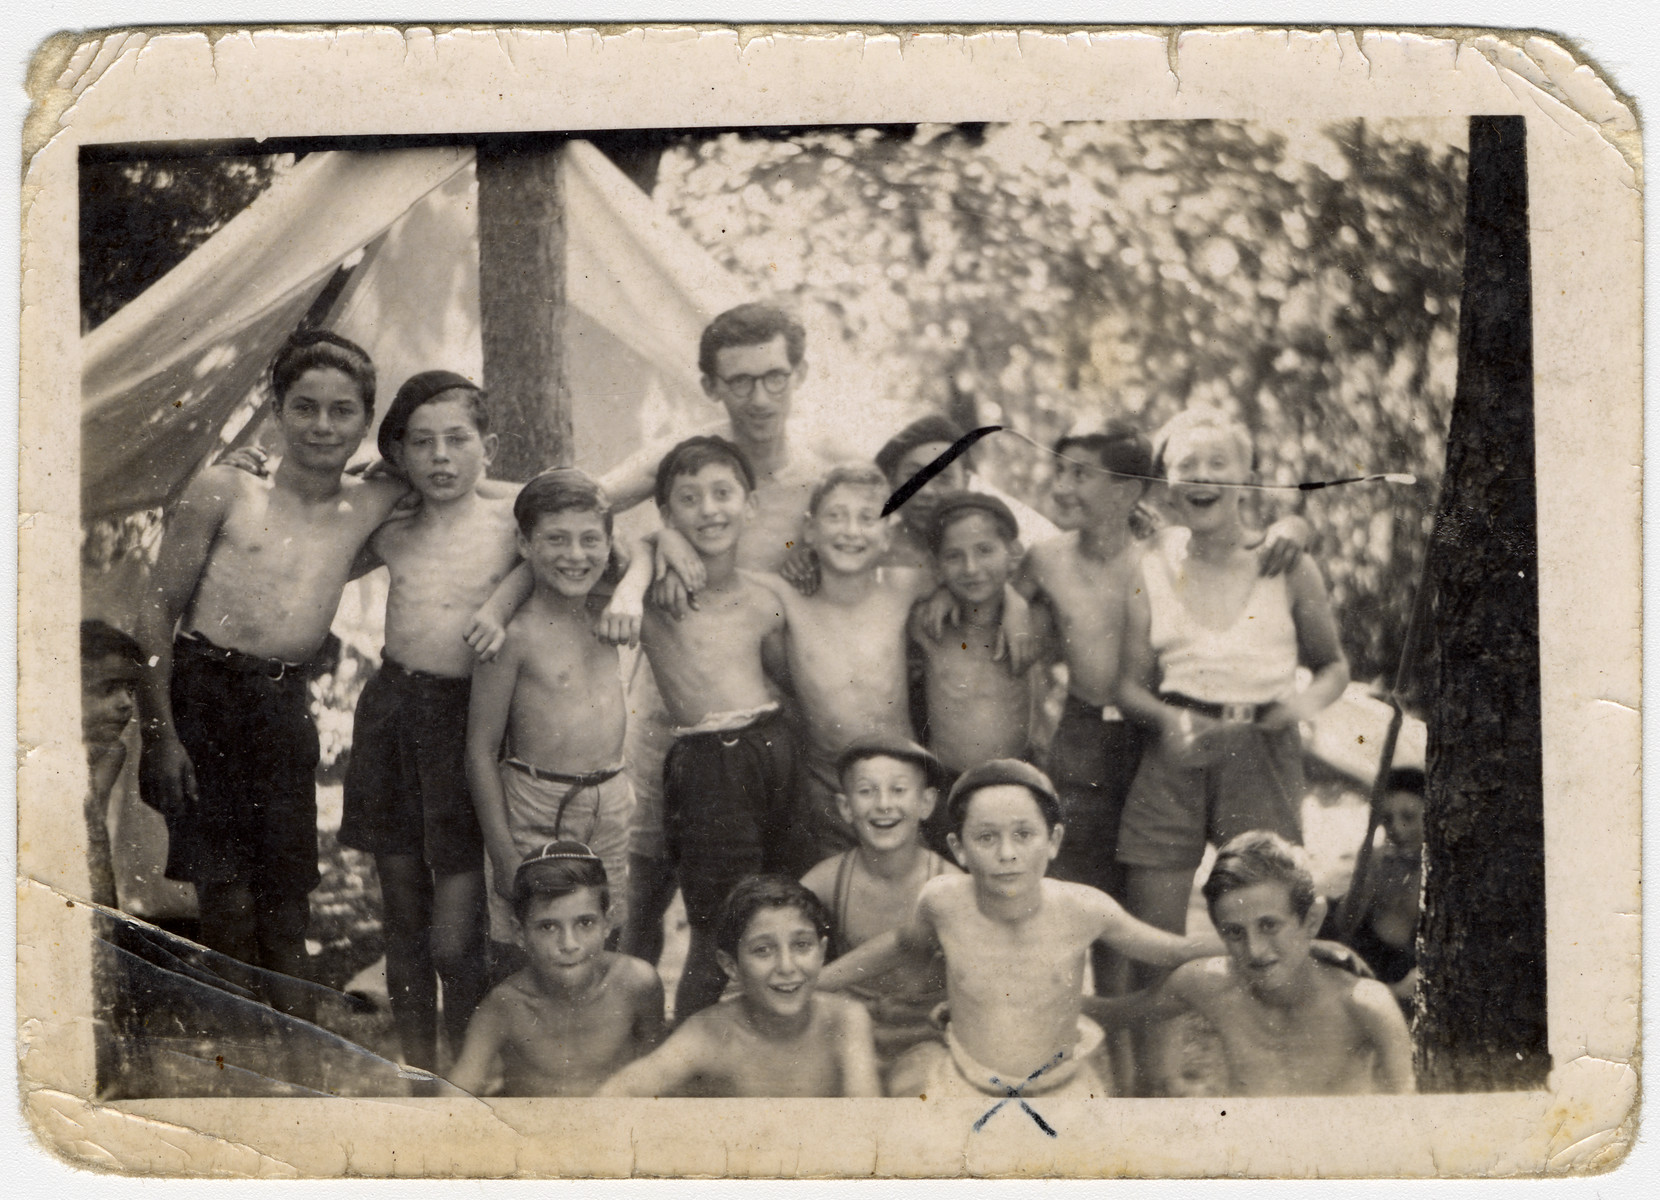 Group portrait of children from the Chateau des Morelles next to a tent in the woods.  Markus Horowitz is pictured in the front row, second from the right.  Henri Dybris, a teacher, is standing in the back, center.